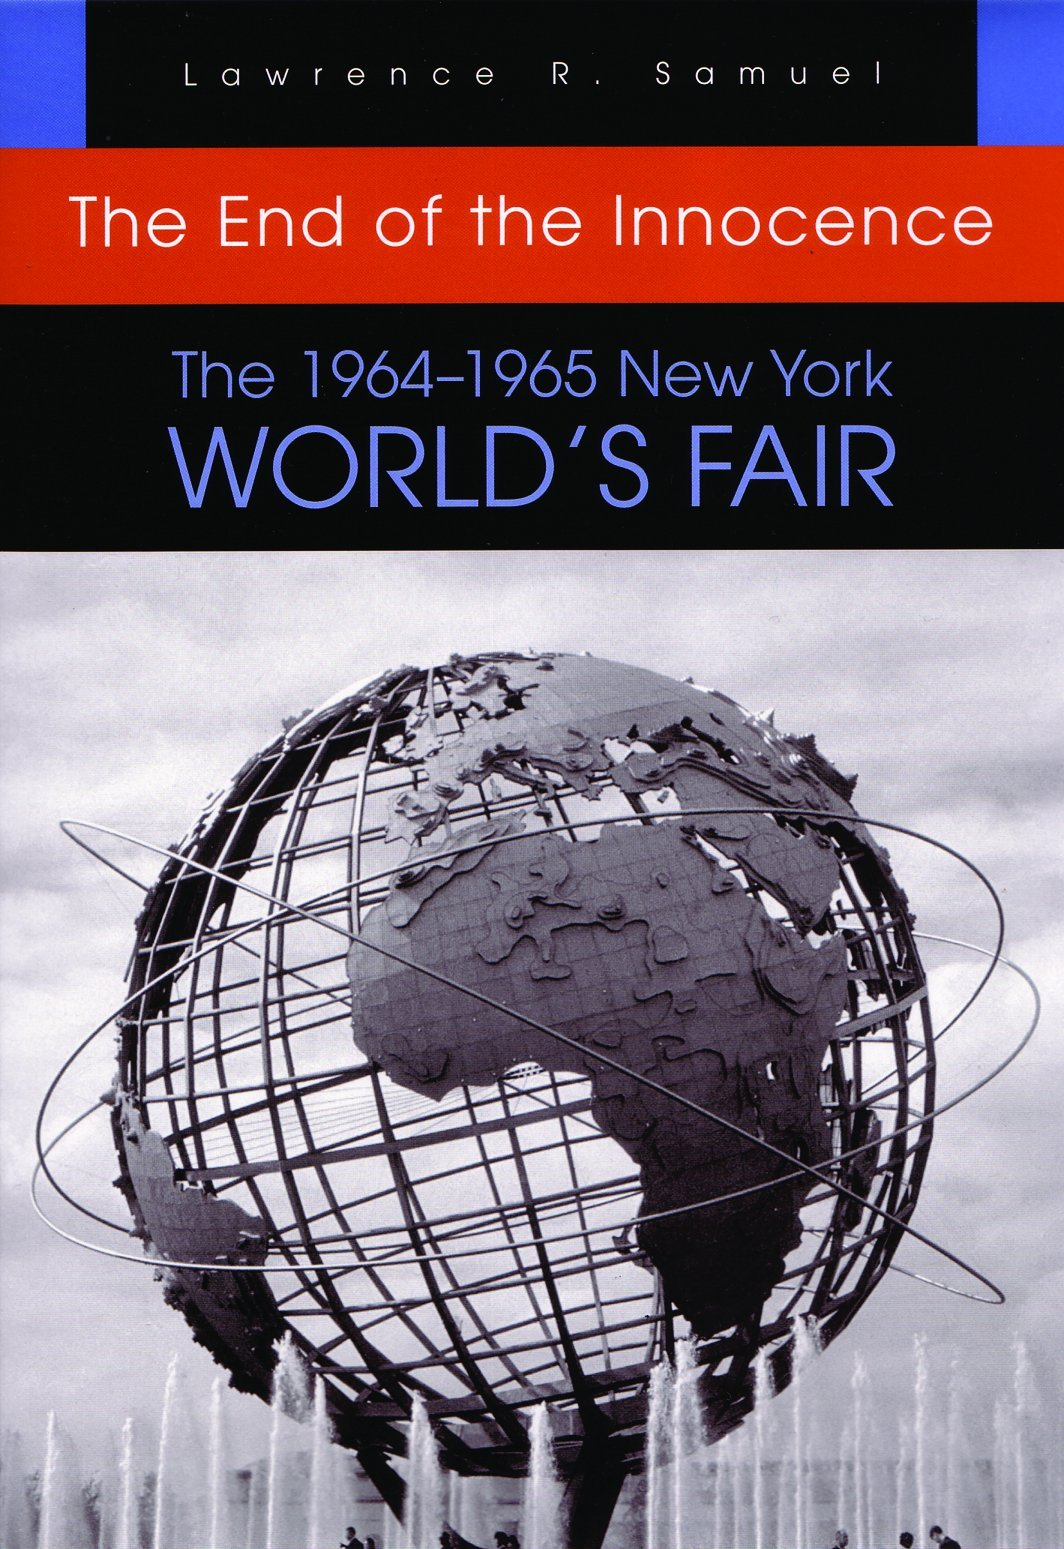 The End of the Innocence: The 1964-1965 New York World's ...  World S Fair Map on expo 67 map, flushing meadows park map, 1964 new york city map, disneyland map, world fair site map, ny state road map, nys fair map, pan american exposition map, queens map, waldorf astoria hotel map, ed sullivan theater map, 1964 nyc subway map, boone county fair map, 64 world fair map, rockefeller center map, jacob javits convention center map, texas state fair map,